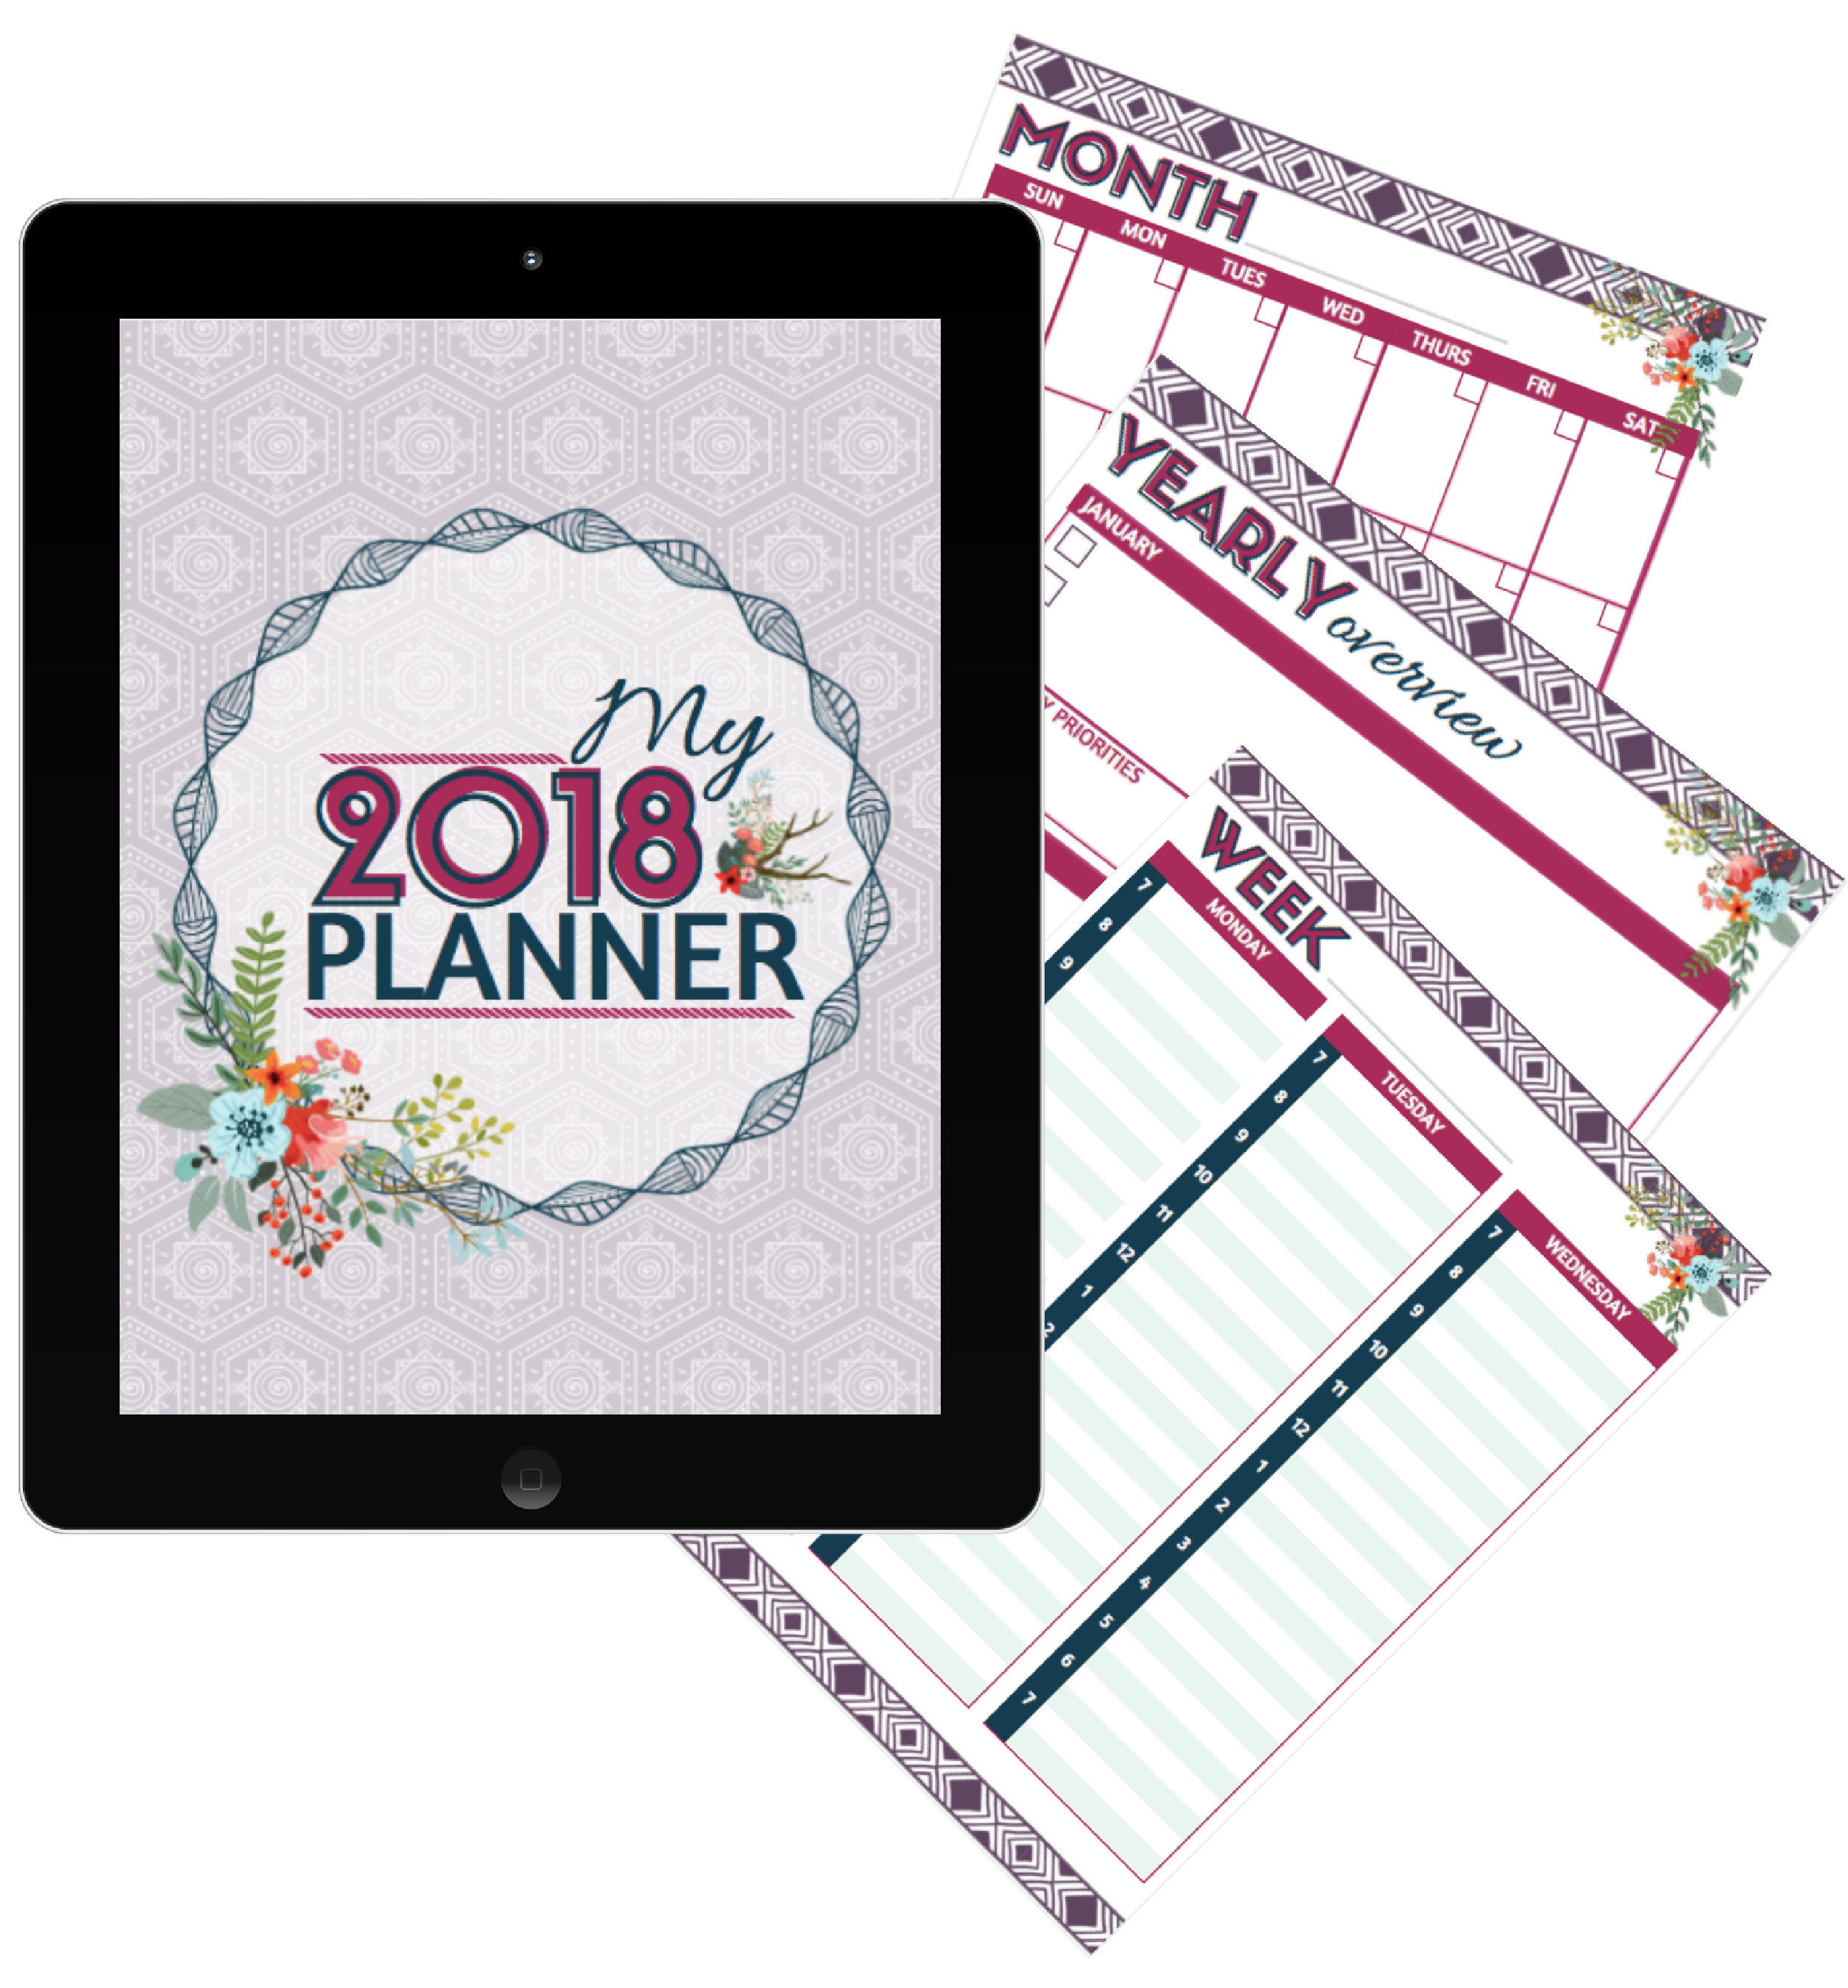 Planner Images 2